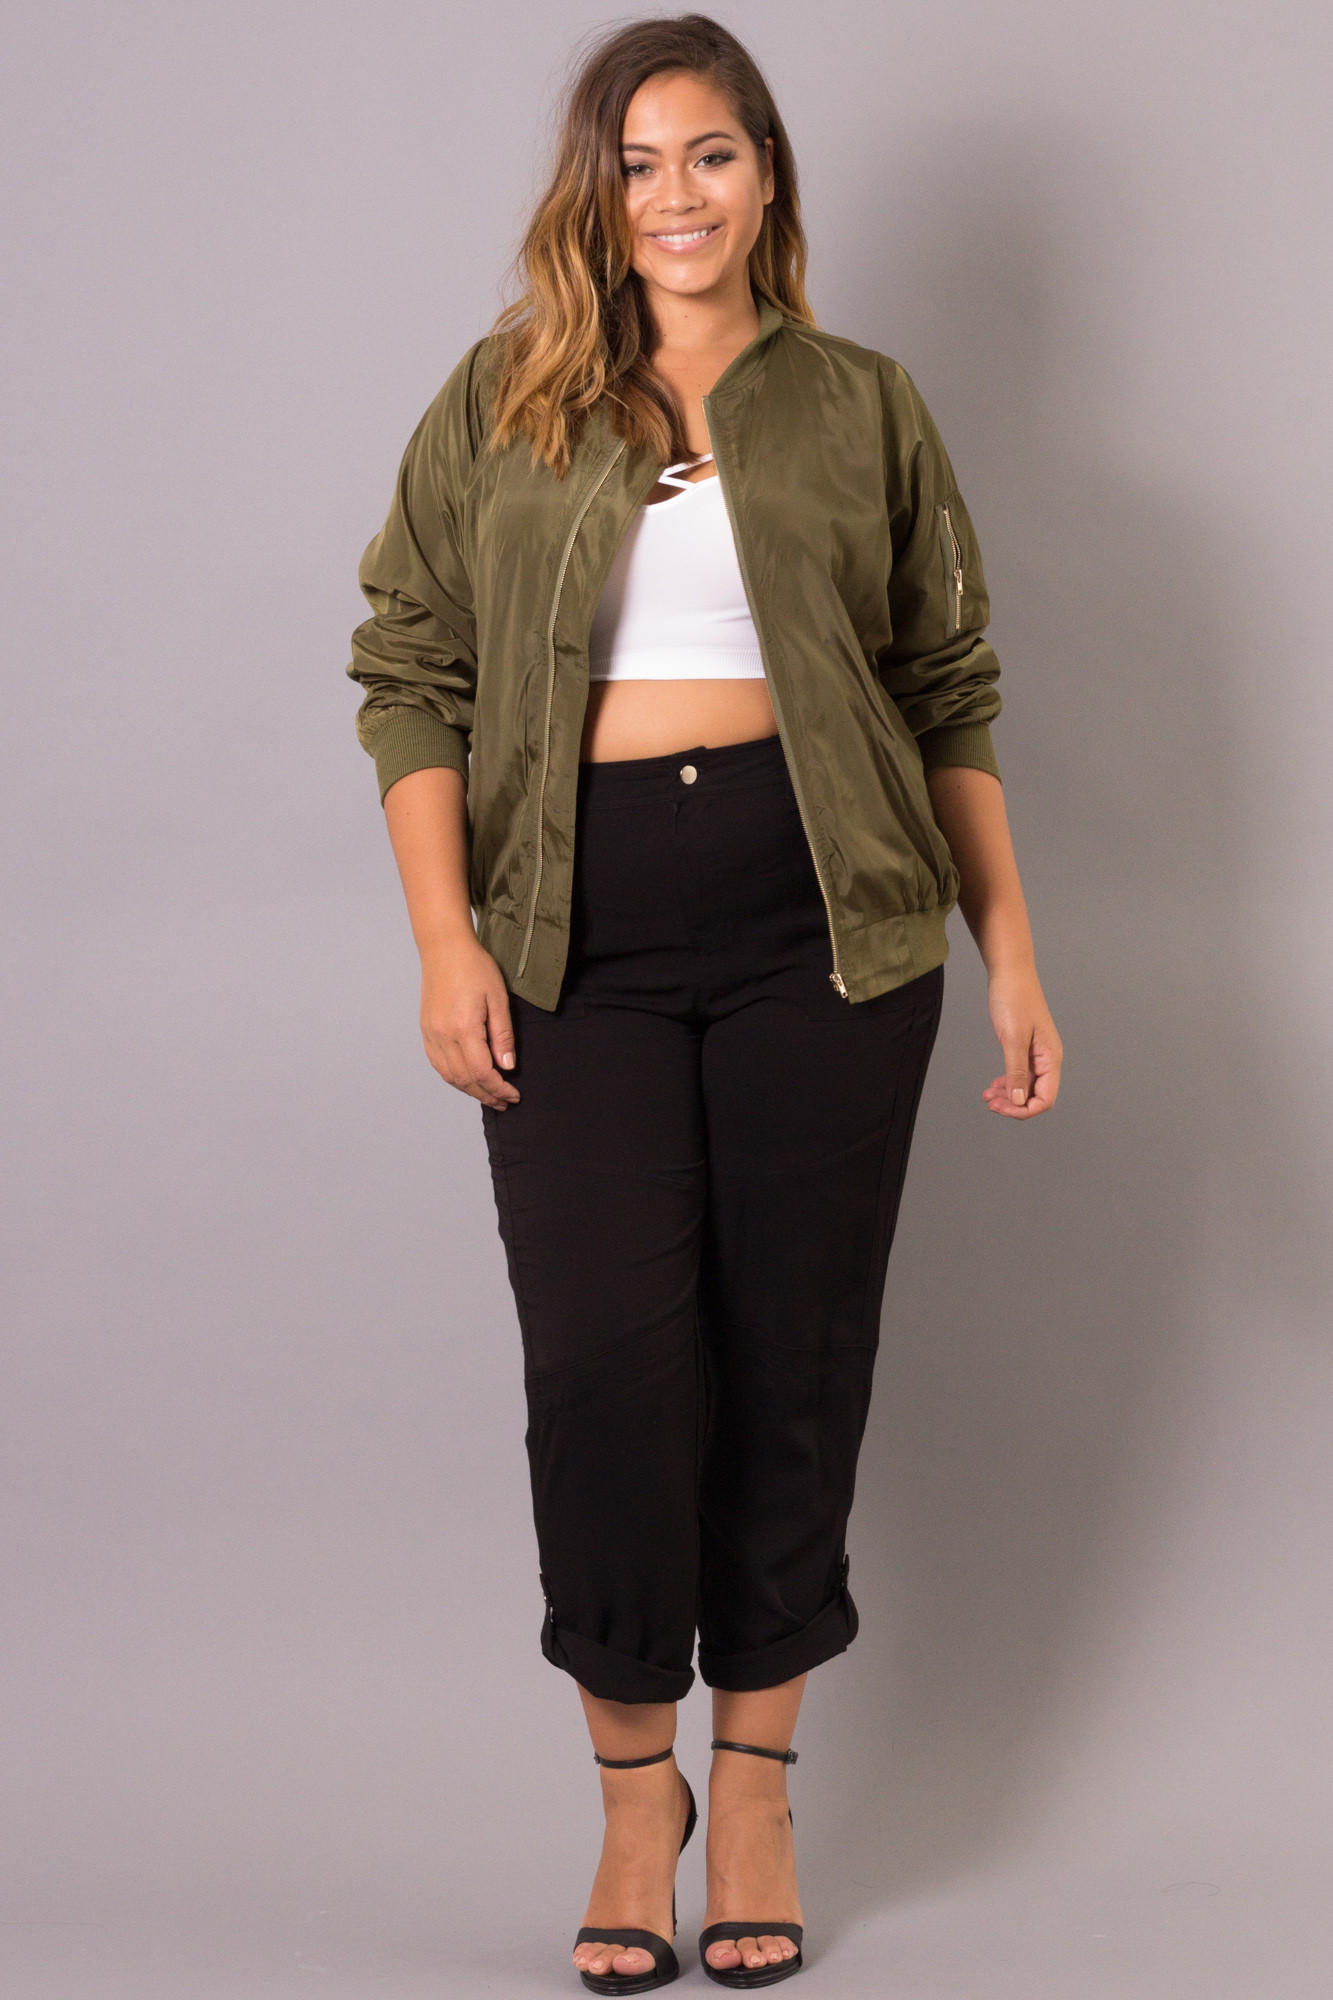 d5270d1f371a8 Plus Size Bomber Jacket - Olive from Curvy Sense